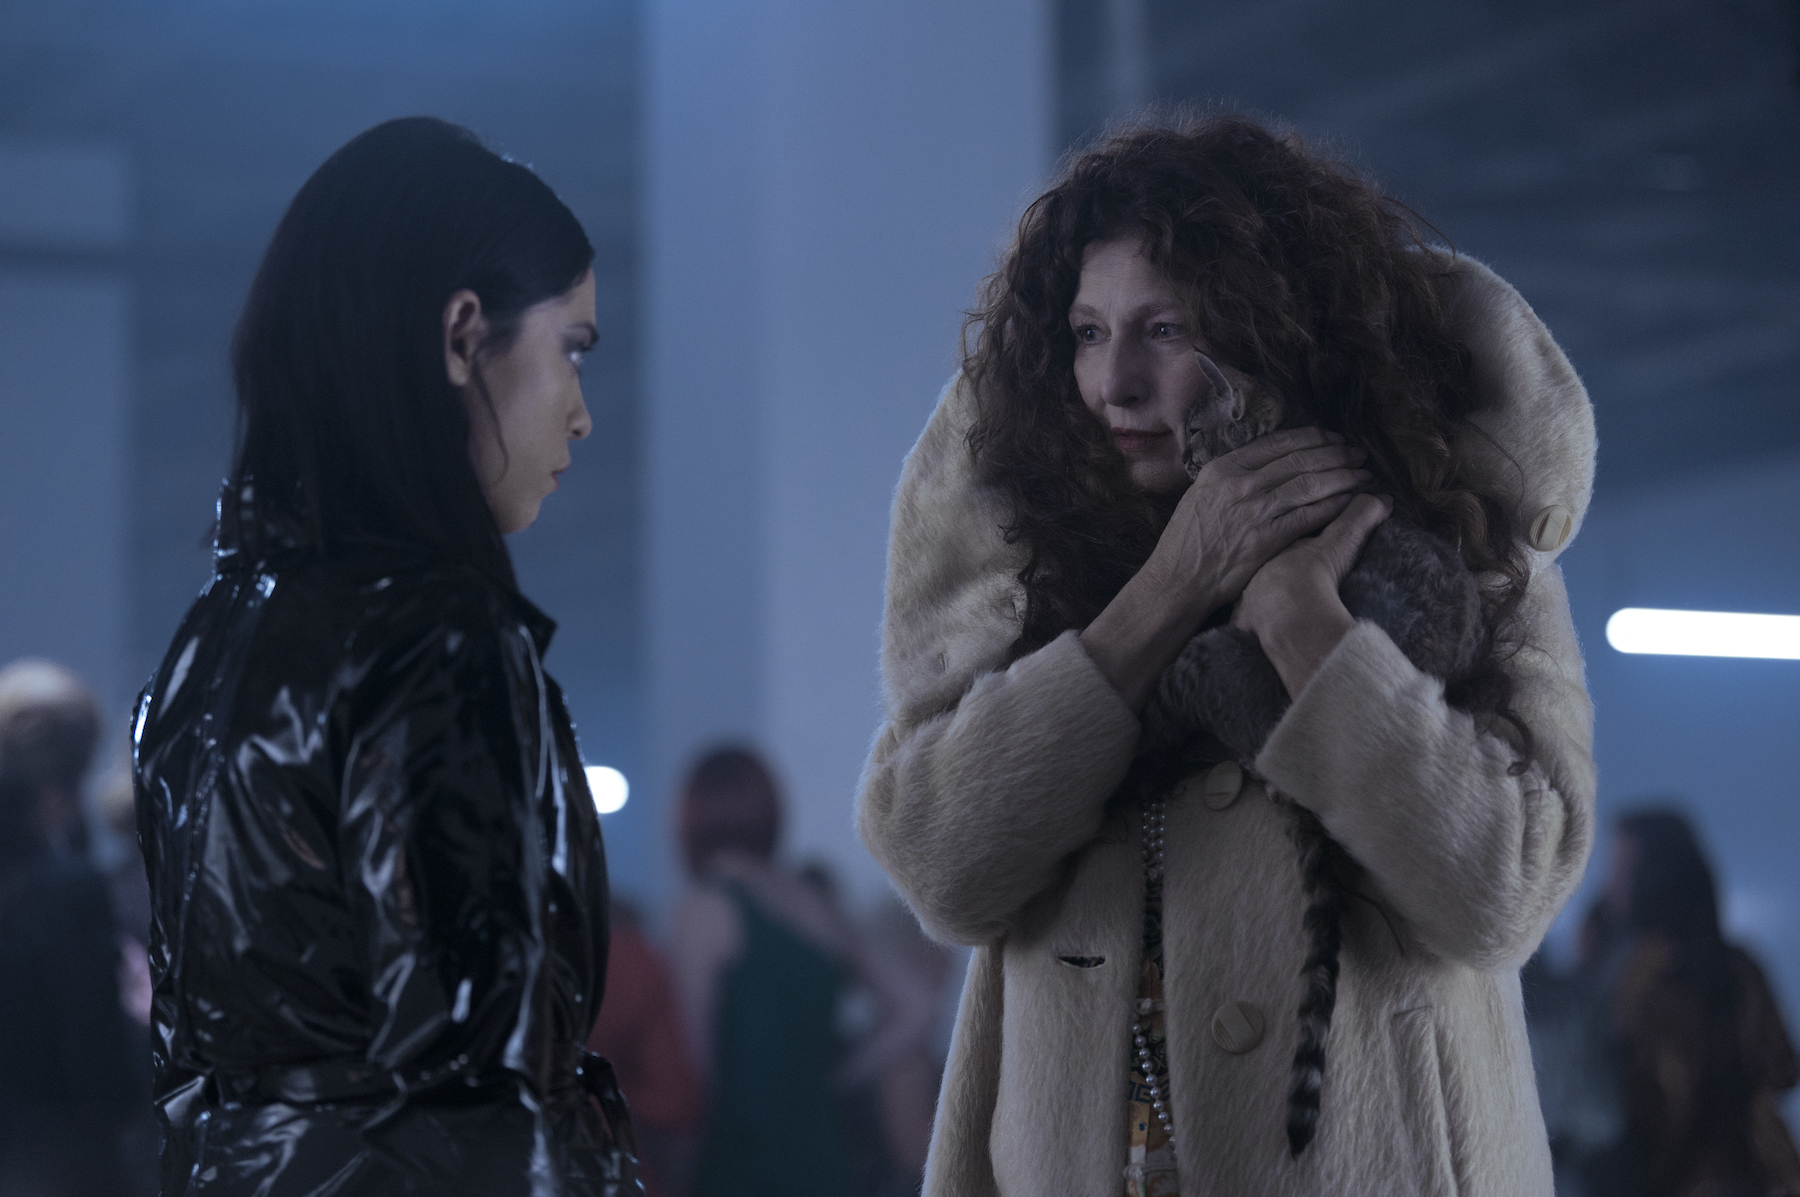 BRAND NEW CHERRY FLAVOR (L to R) ROSA SALAZAR as LISA NOVA and CATHERINE KEENER as BORO in episode 101 of BRAND NEW CHERRY FLAVOR Cr. SERGEI BACHLAKOV/NETFLIX © 2021